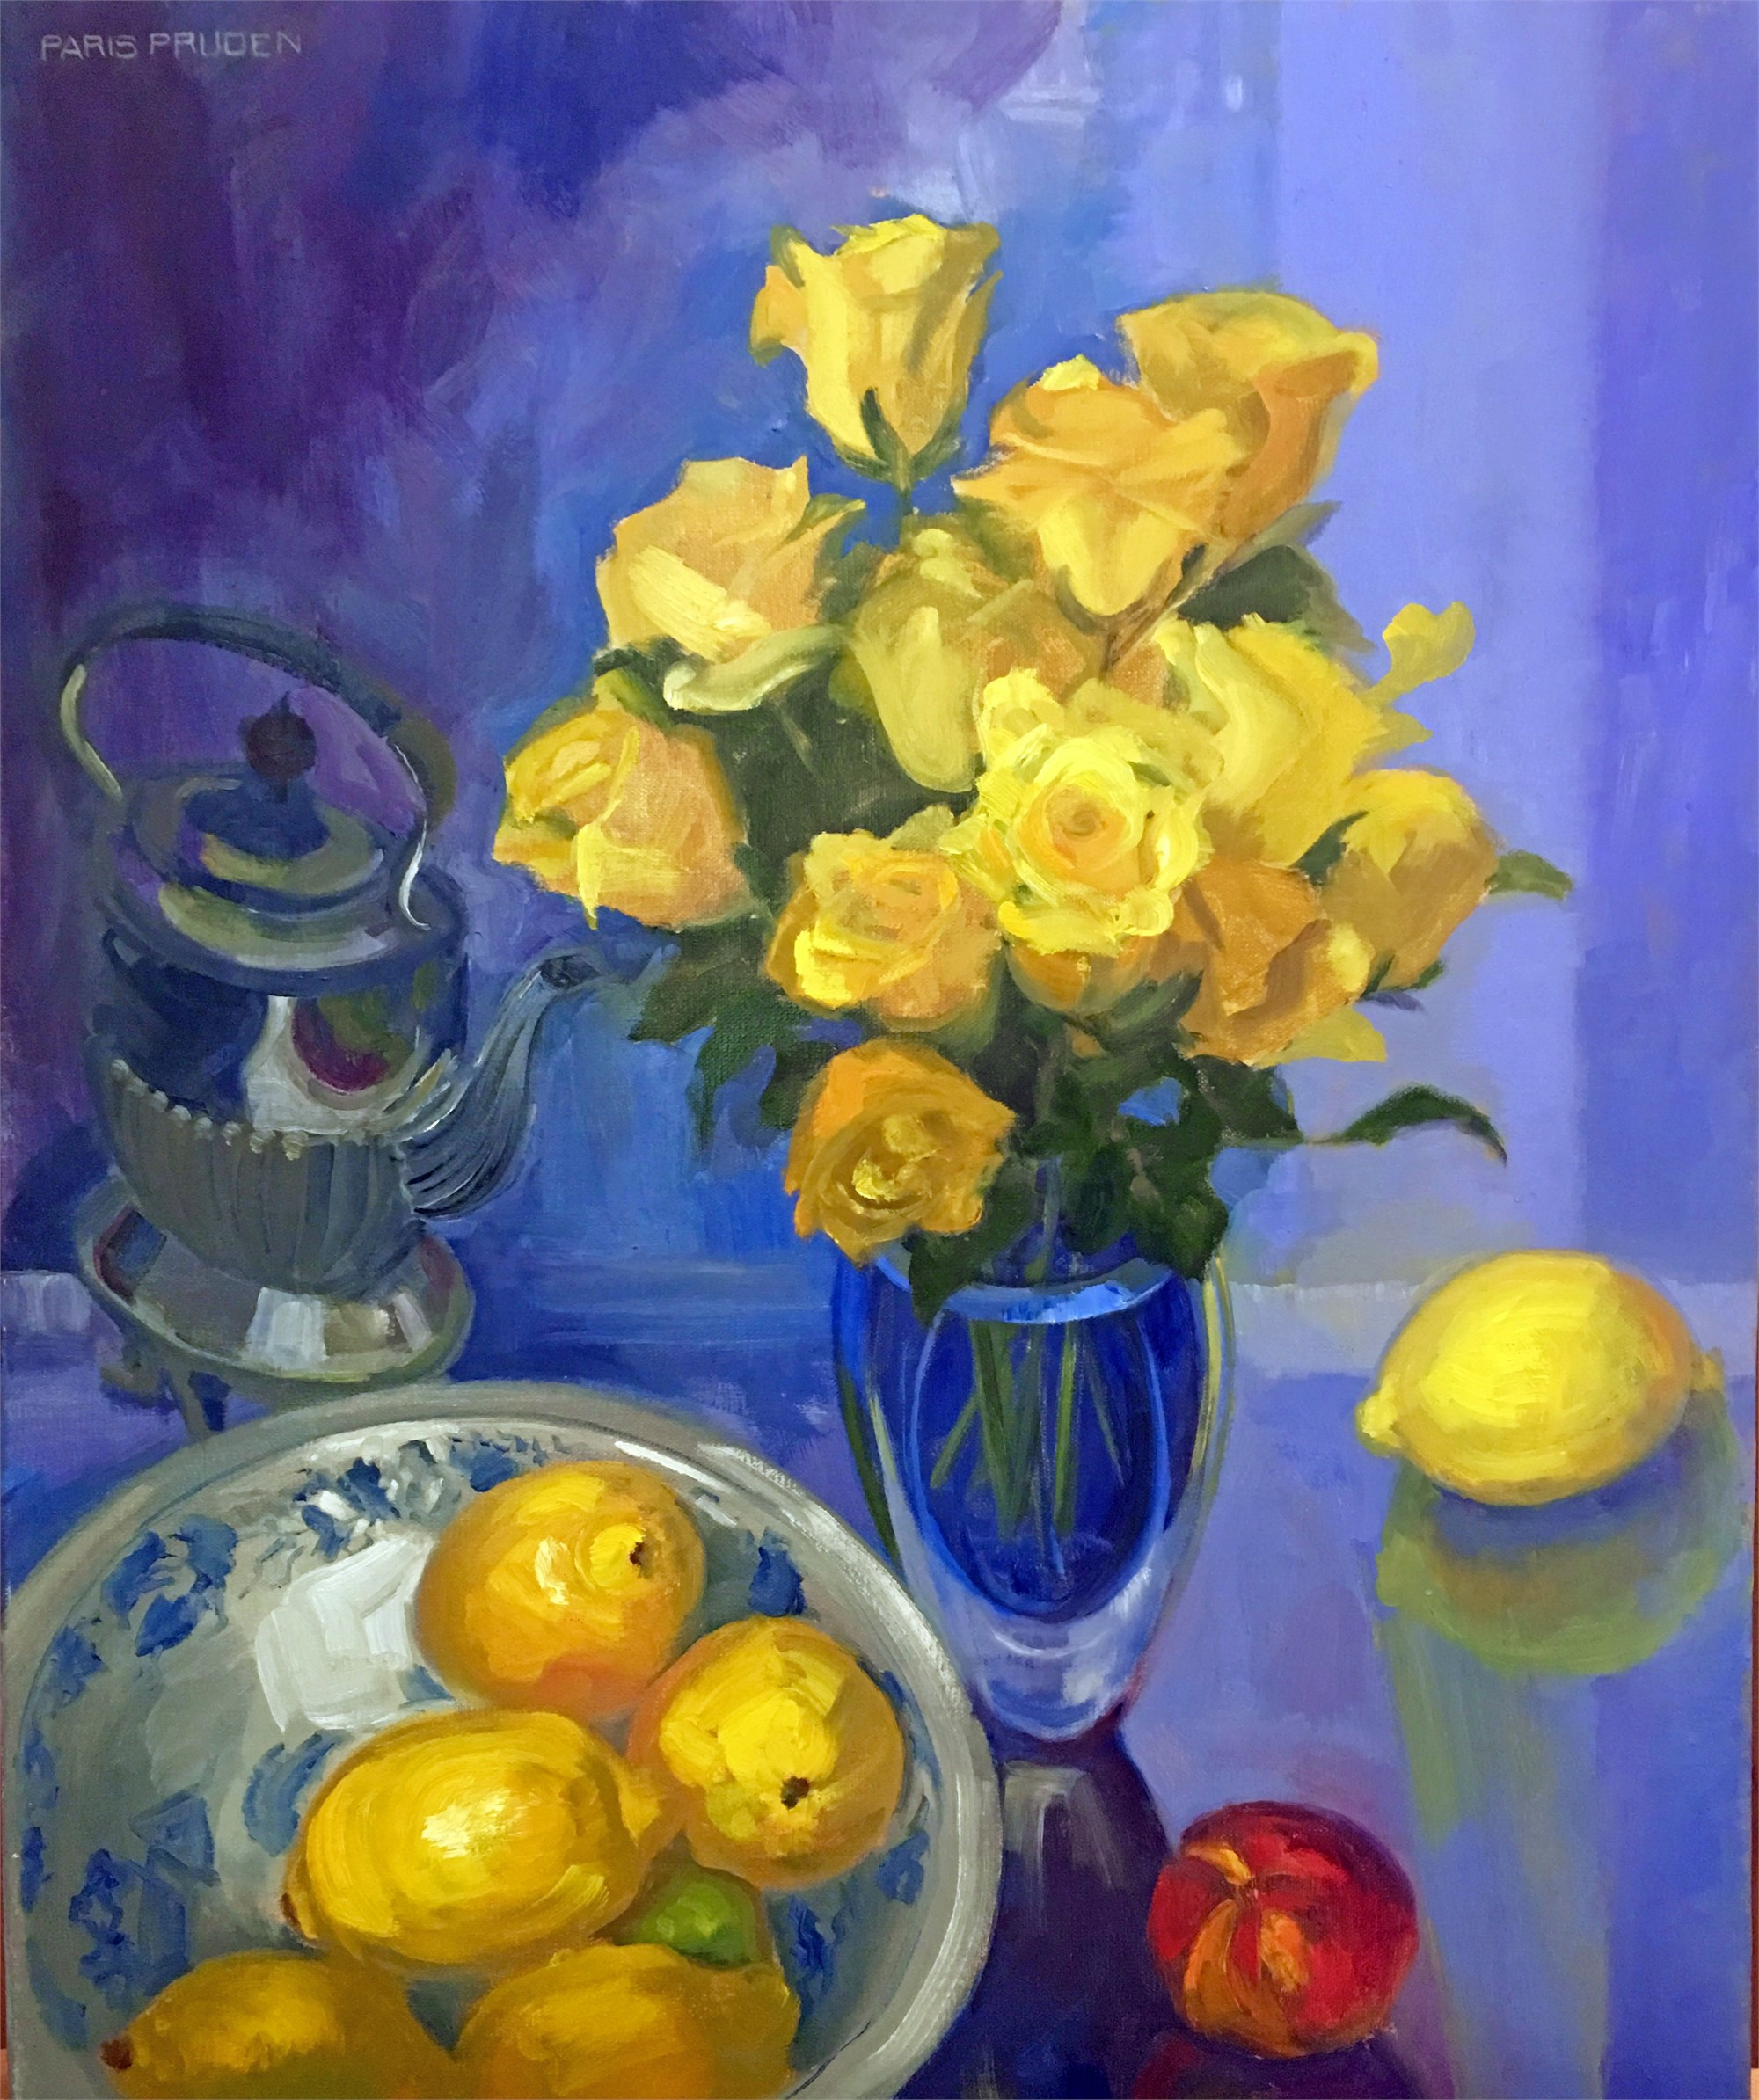 Yellow Roses  by Nancy Paris Pruden